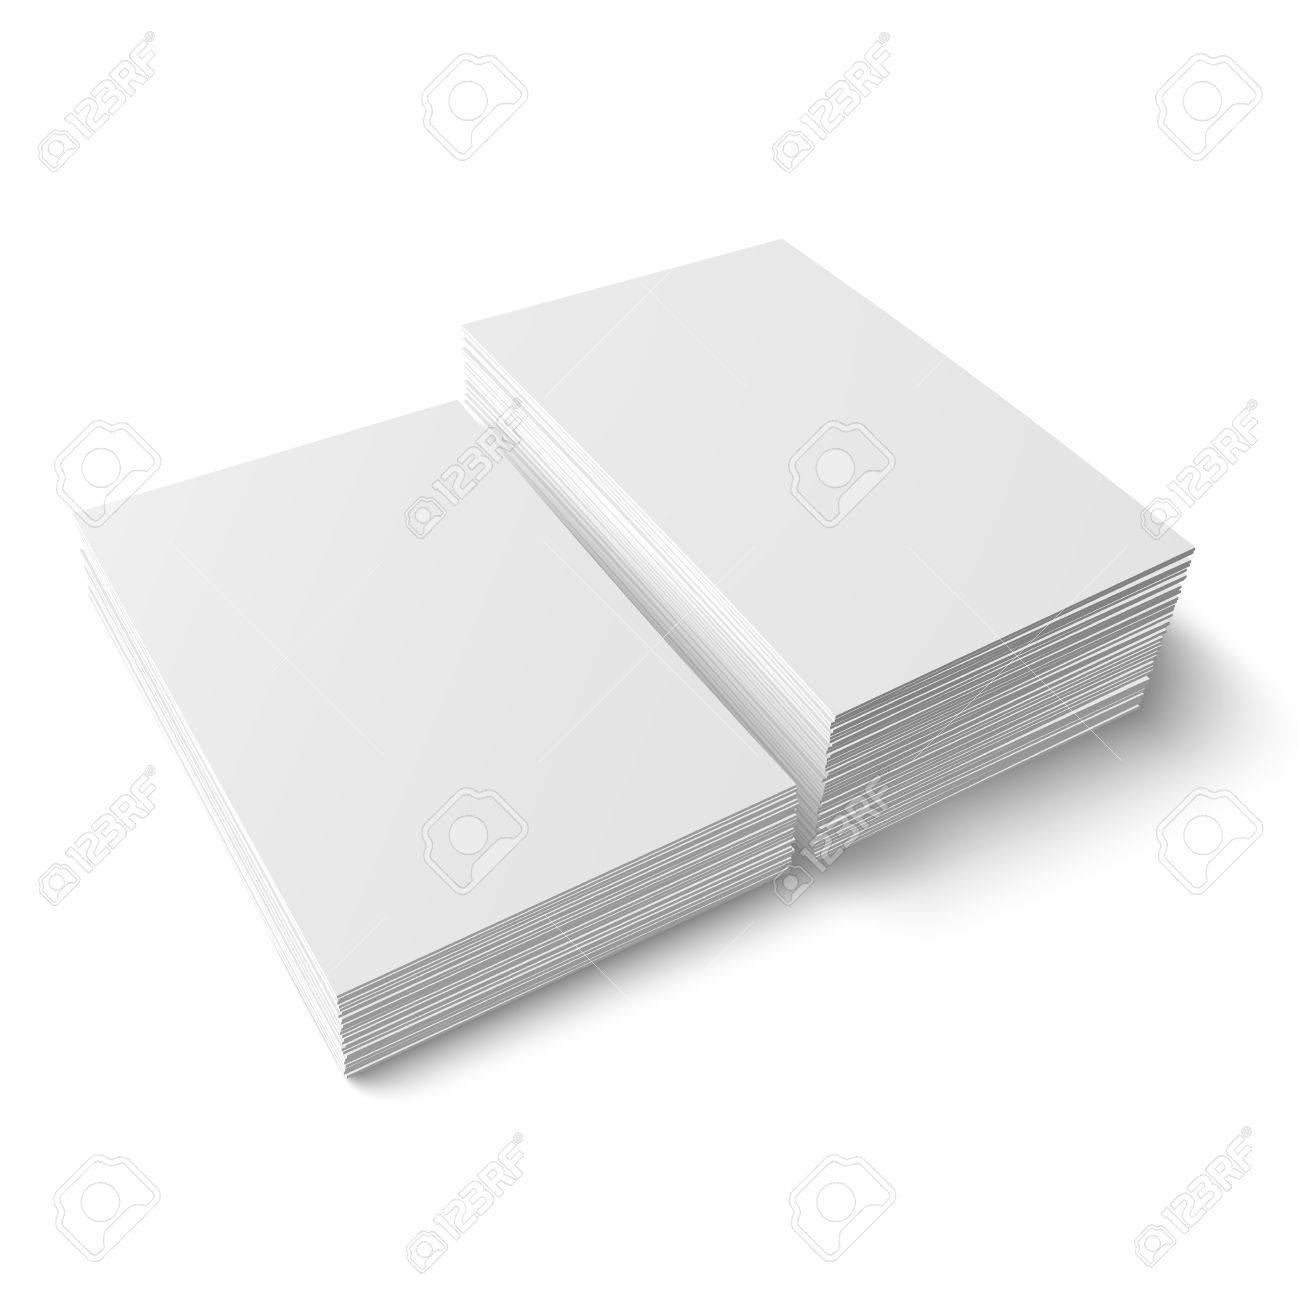 Two stacks of blank business cards of different heights on white two stacks of blank business cards of different heights on white background with soft shadows reheart Choice Image